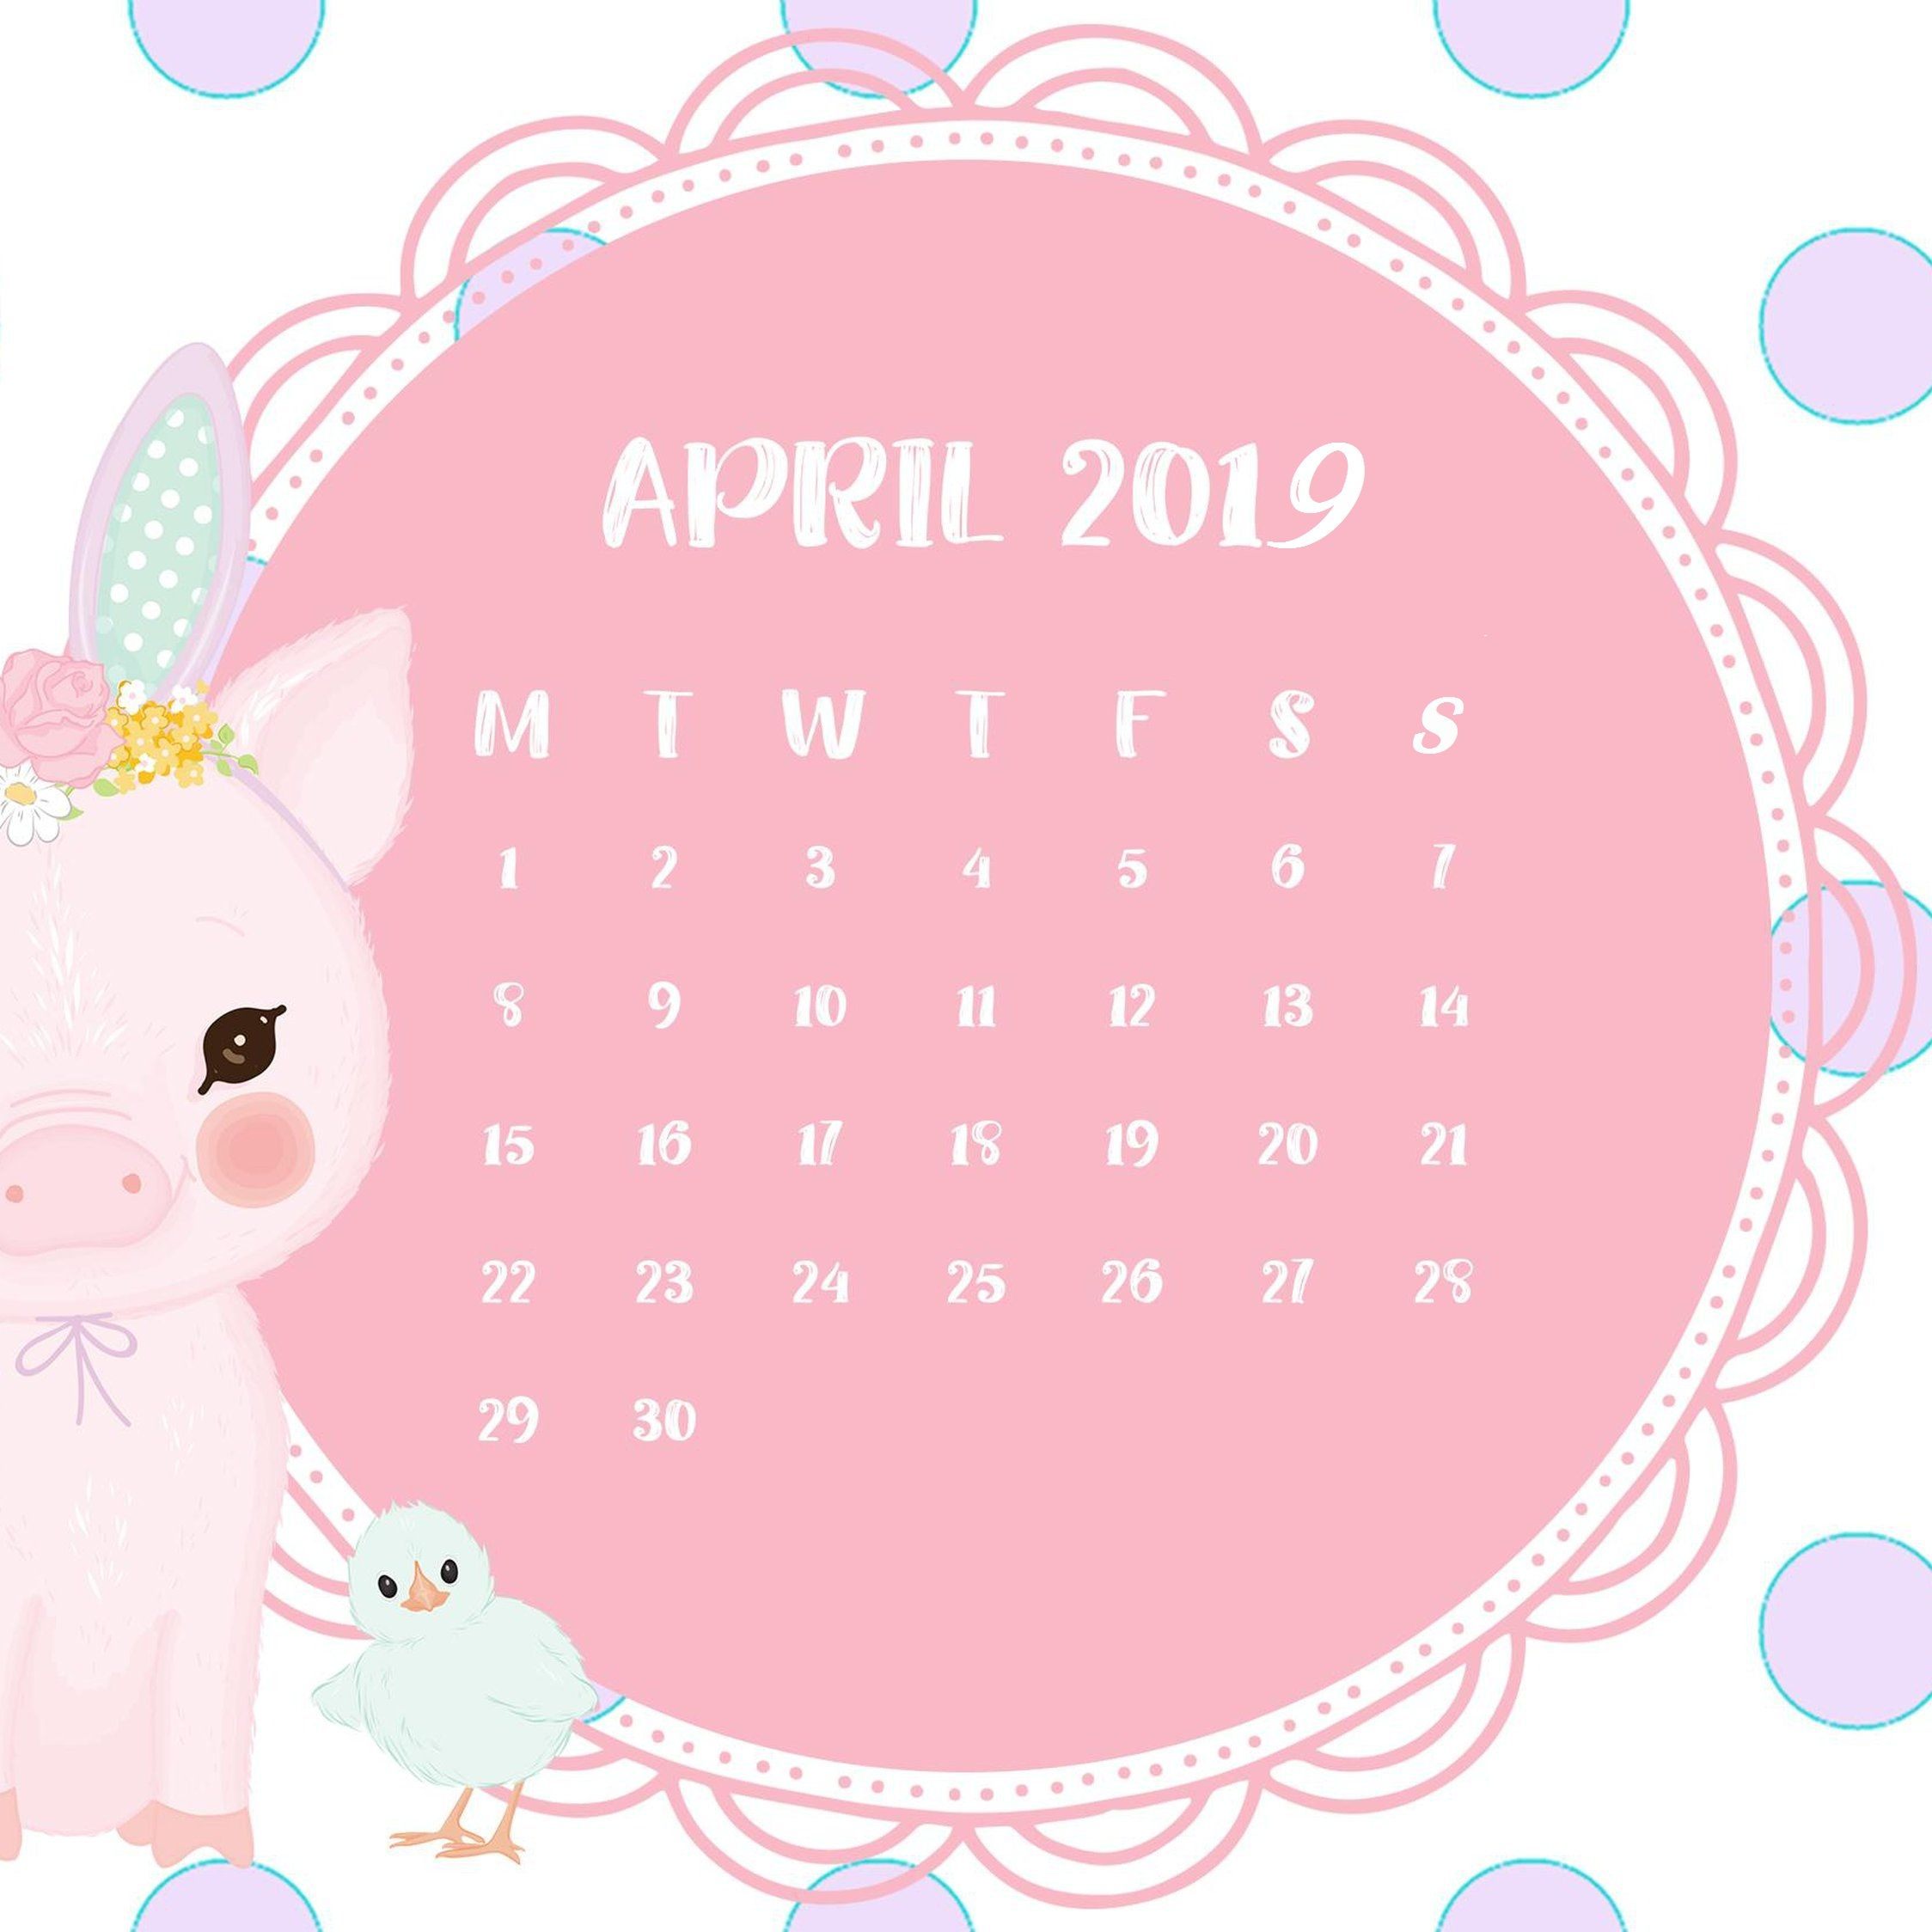 April 2019 iPhone Wallpaper With Calendar in 2019.